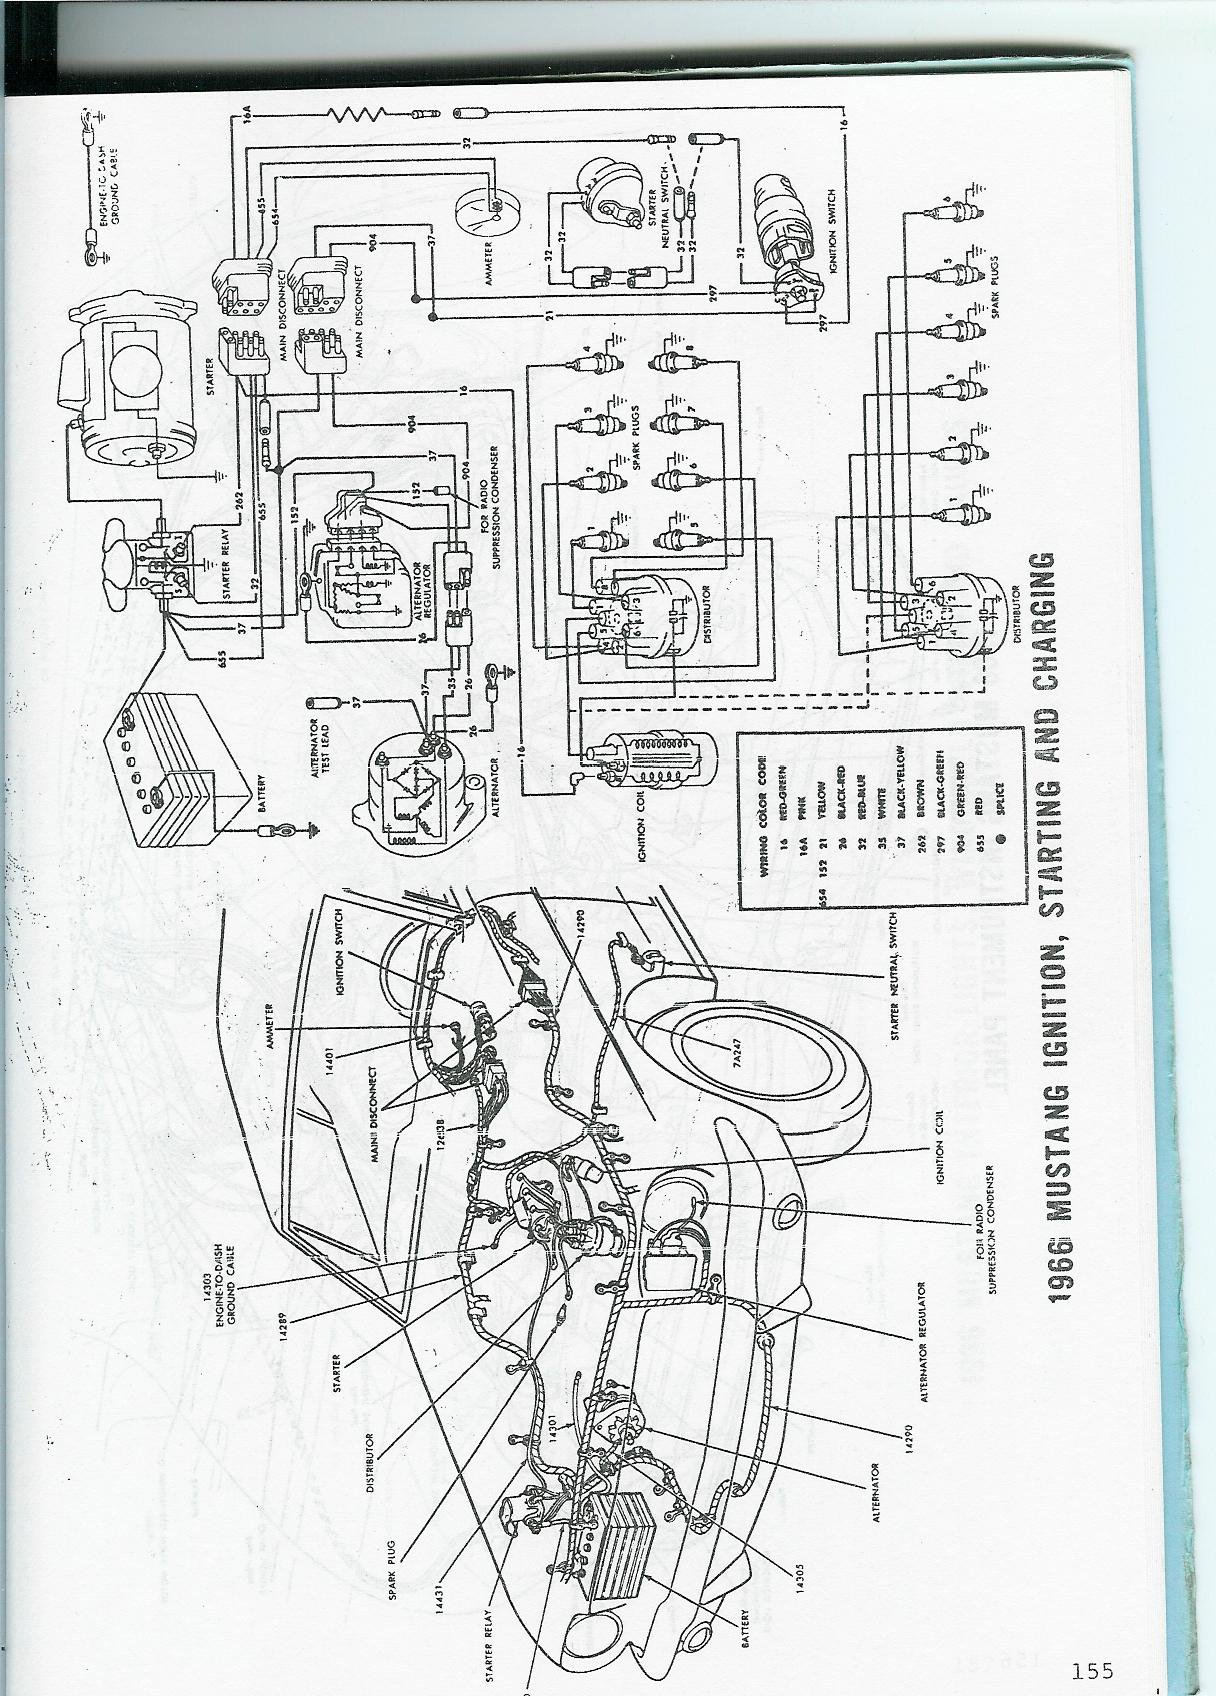 1966 Mustang Wiring Diagram Manual